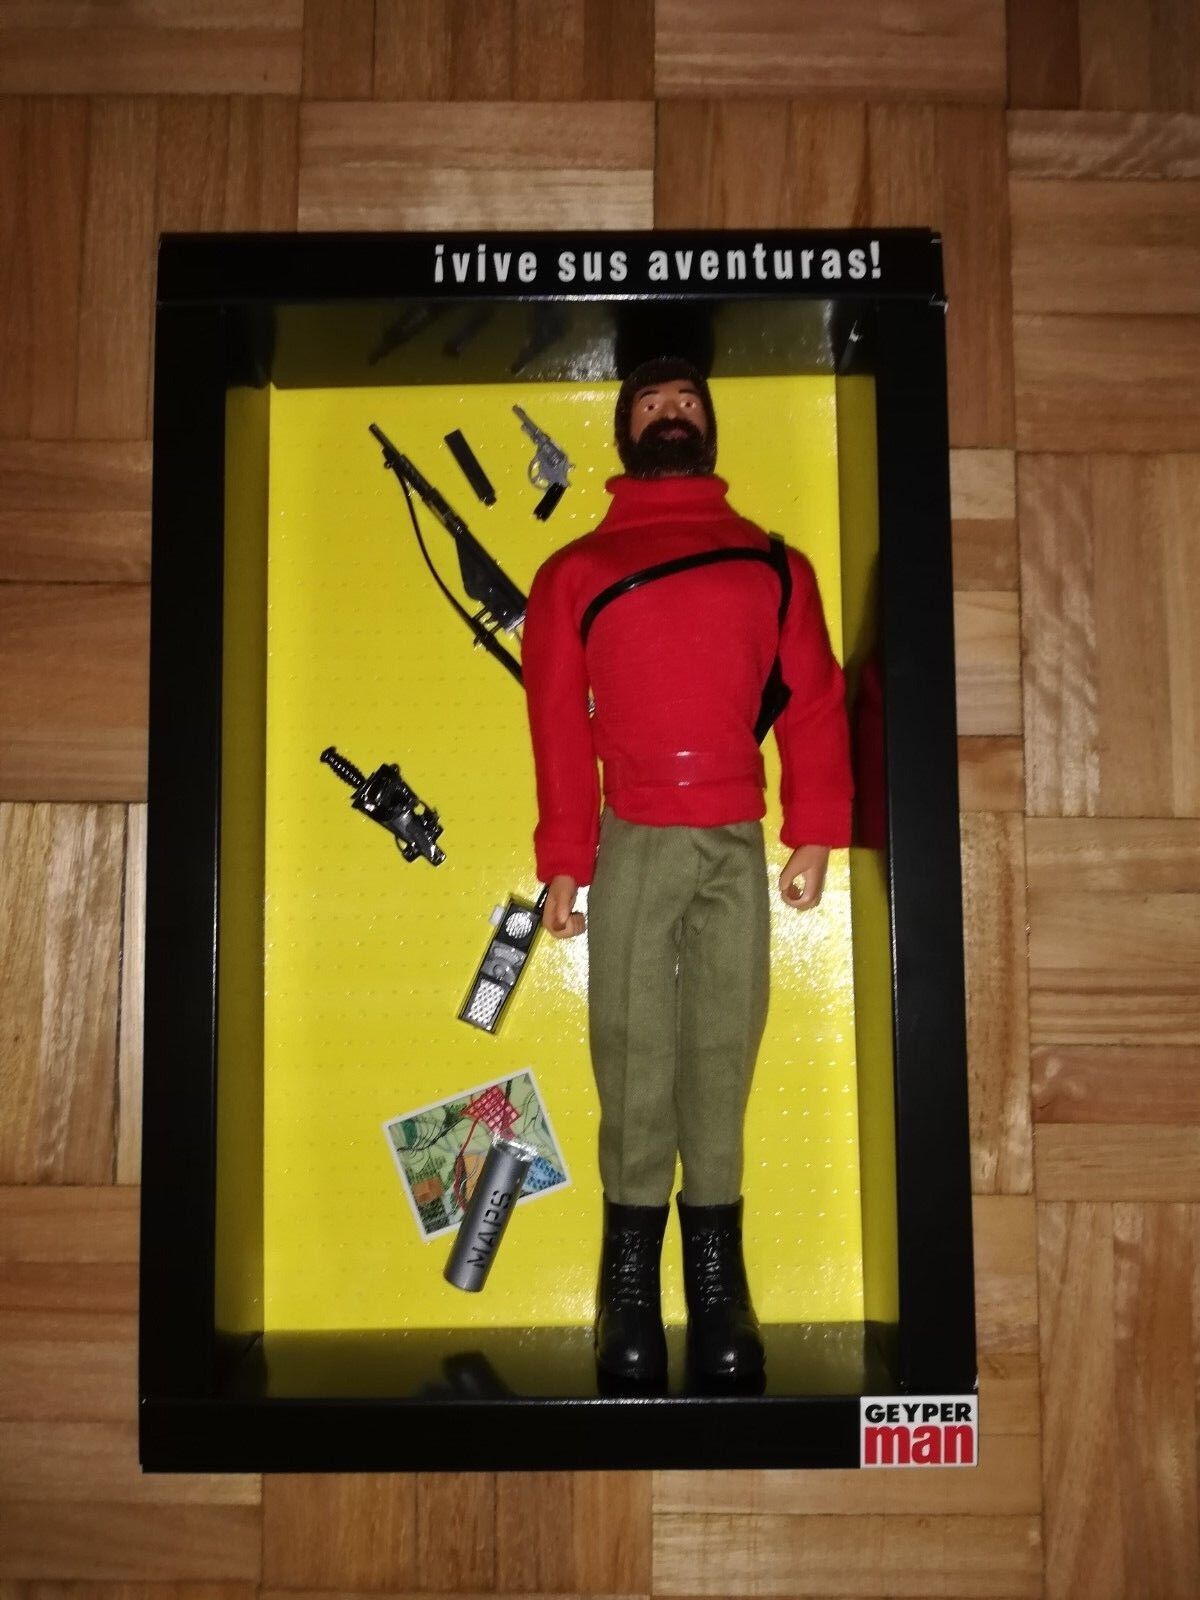 Action man gi joe action team geyperman adventurer red sweater